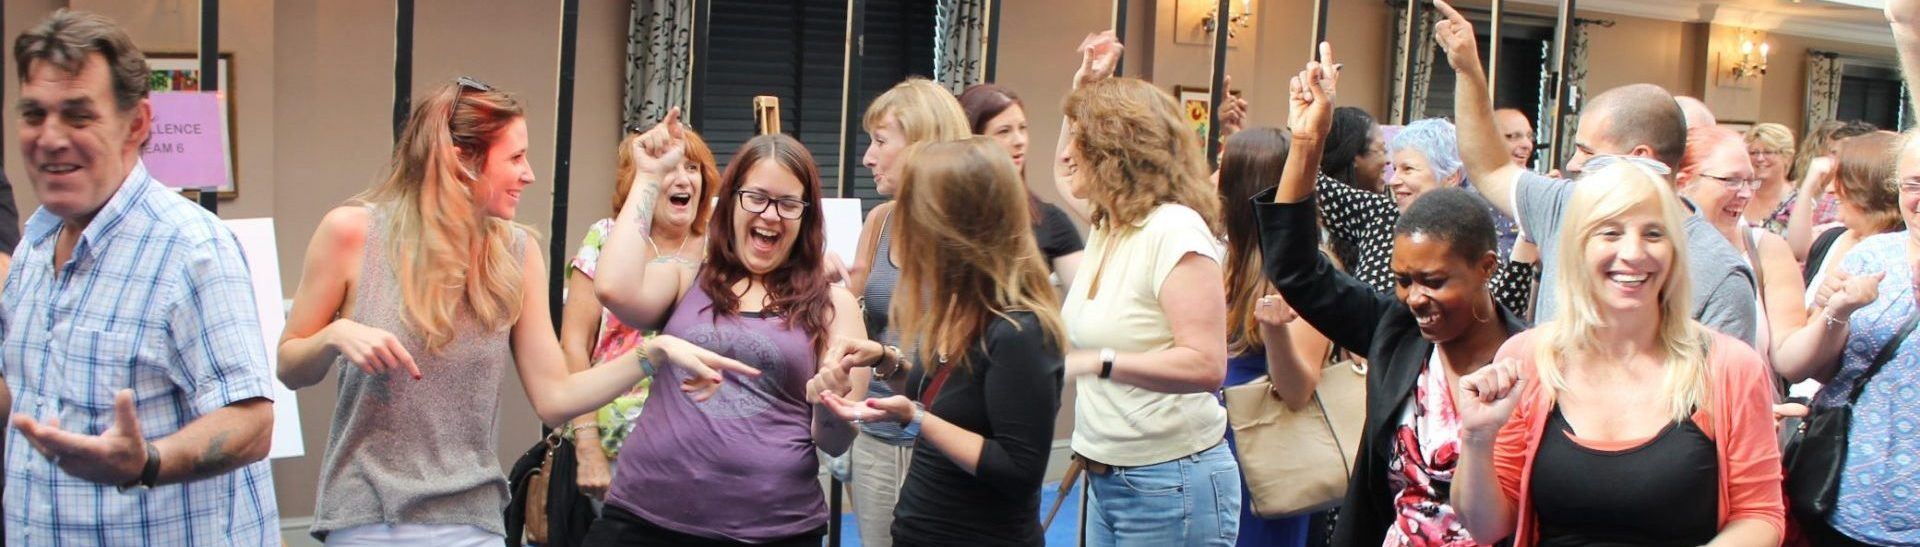 A group of people laughing and waving thier arms whilst taking part in an indoor team building activity